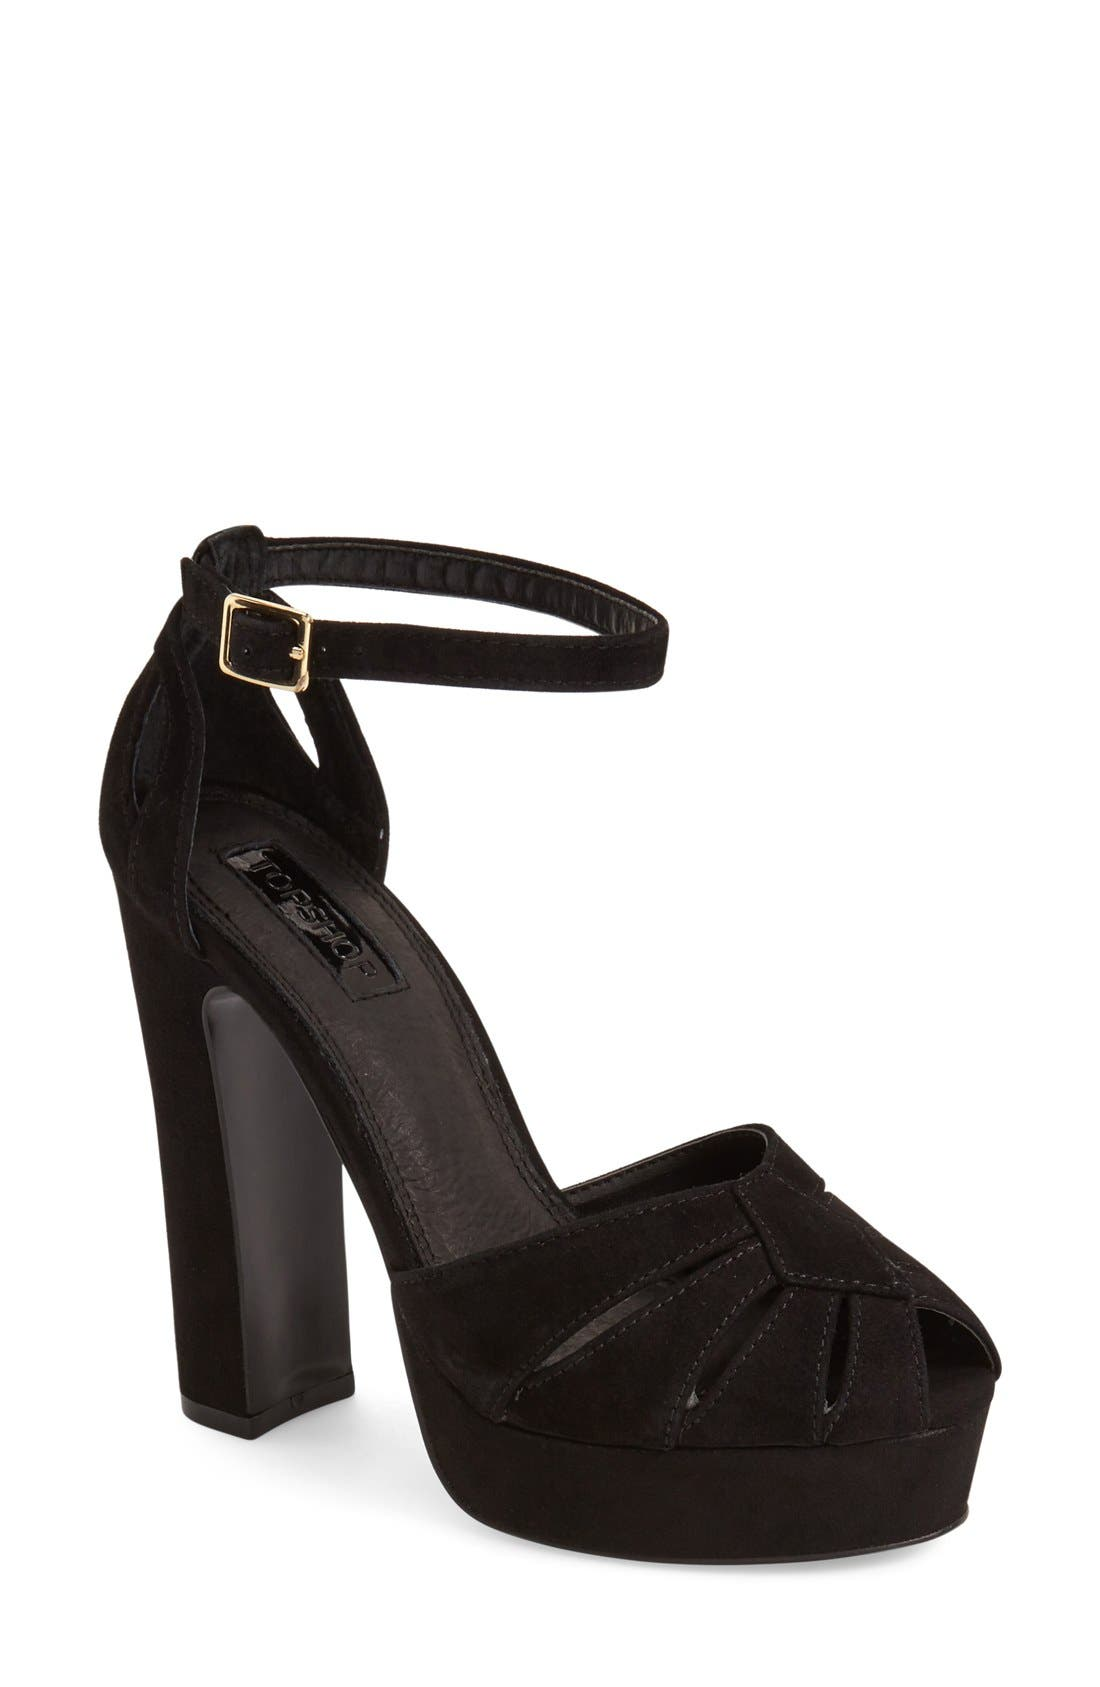 Alternate Image 1 Selected - Topshop 'Sienna' Platform Peep Toe Sandal (Women)